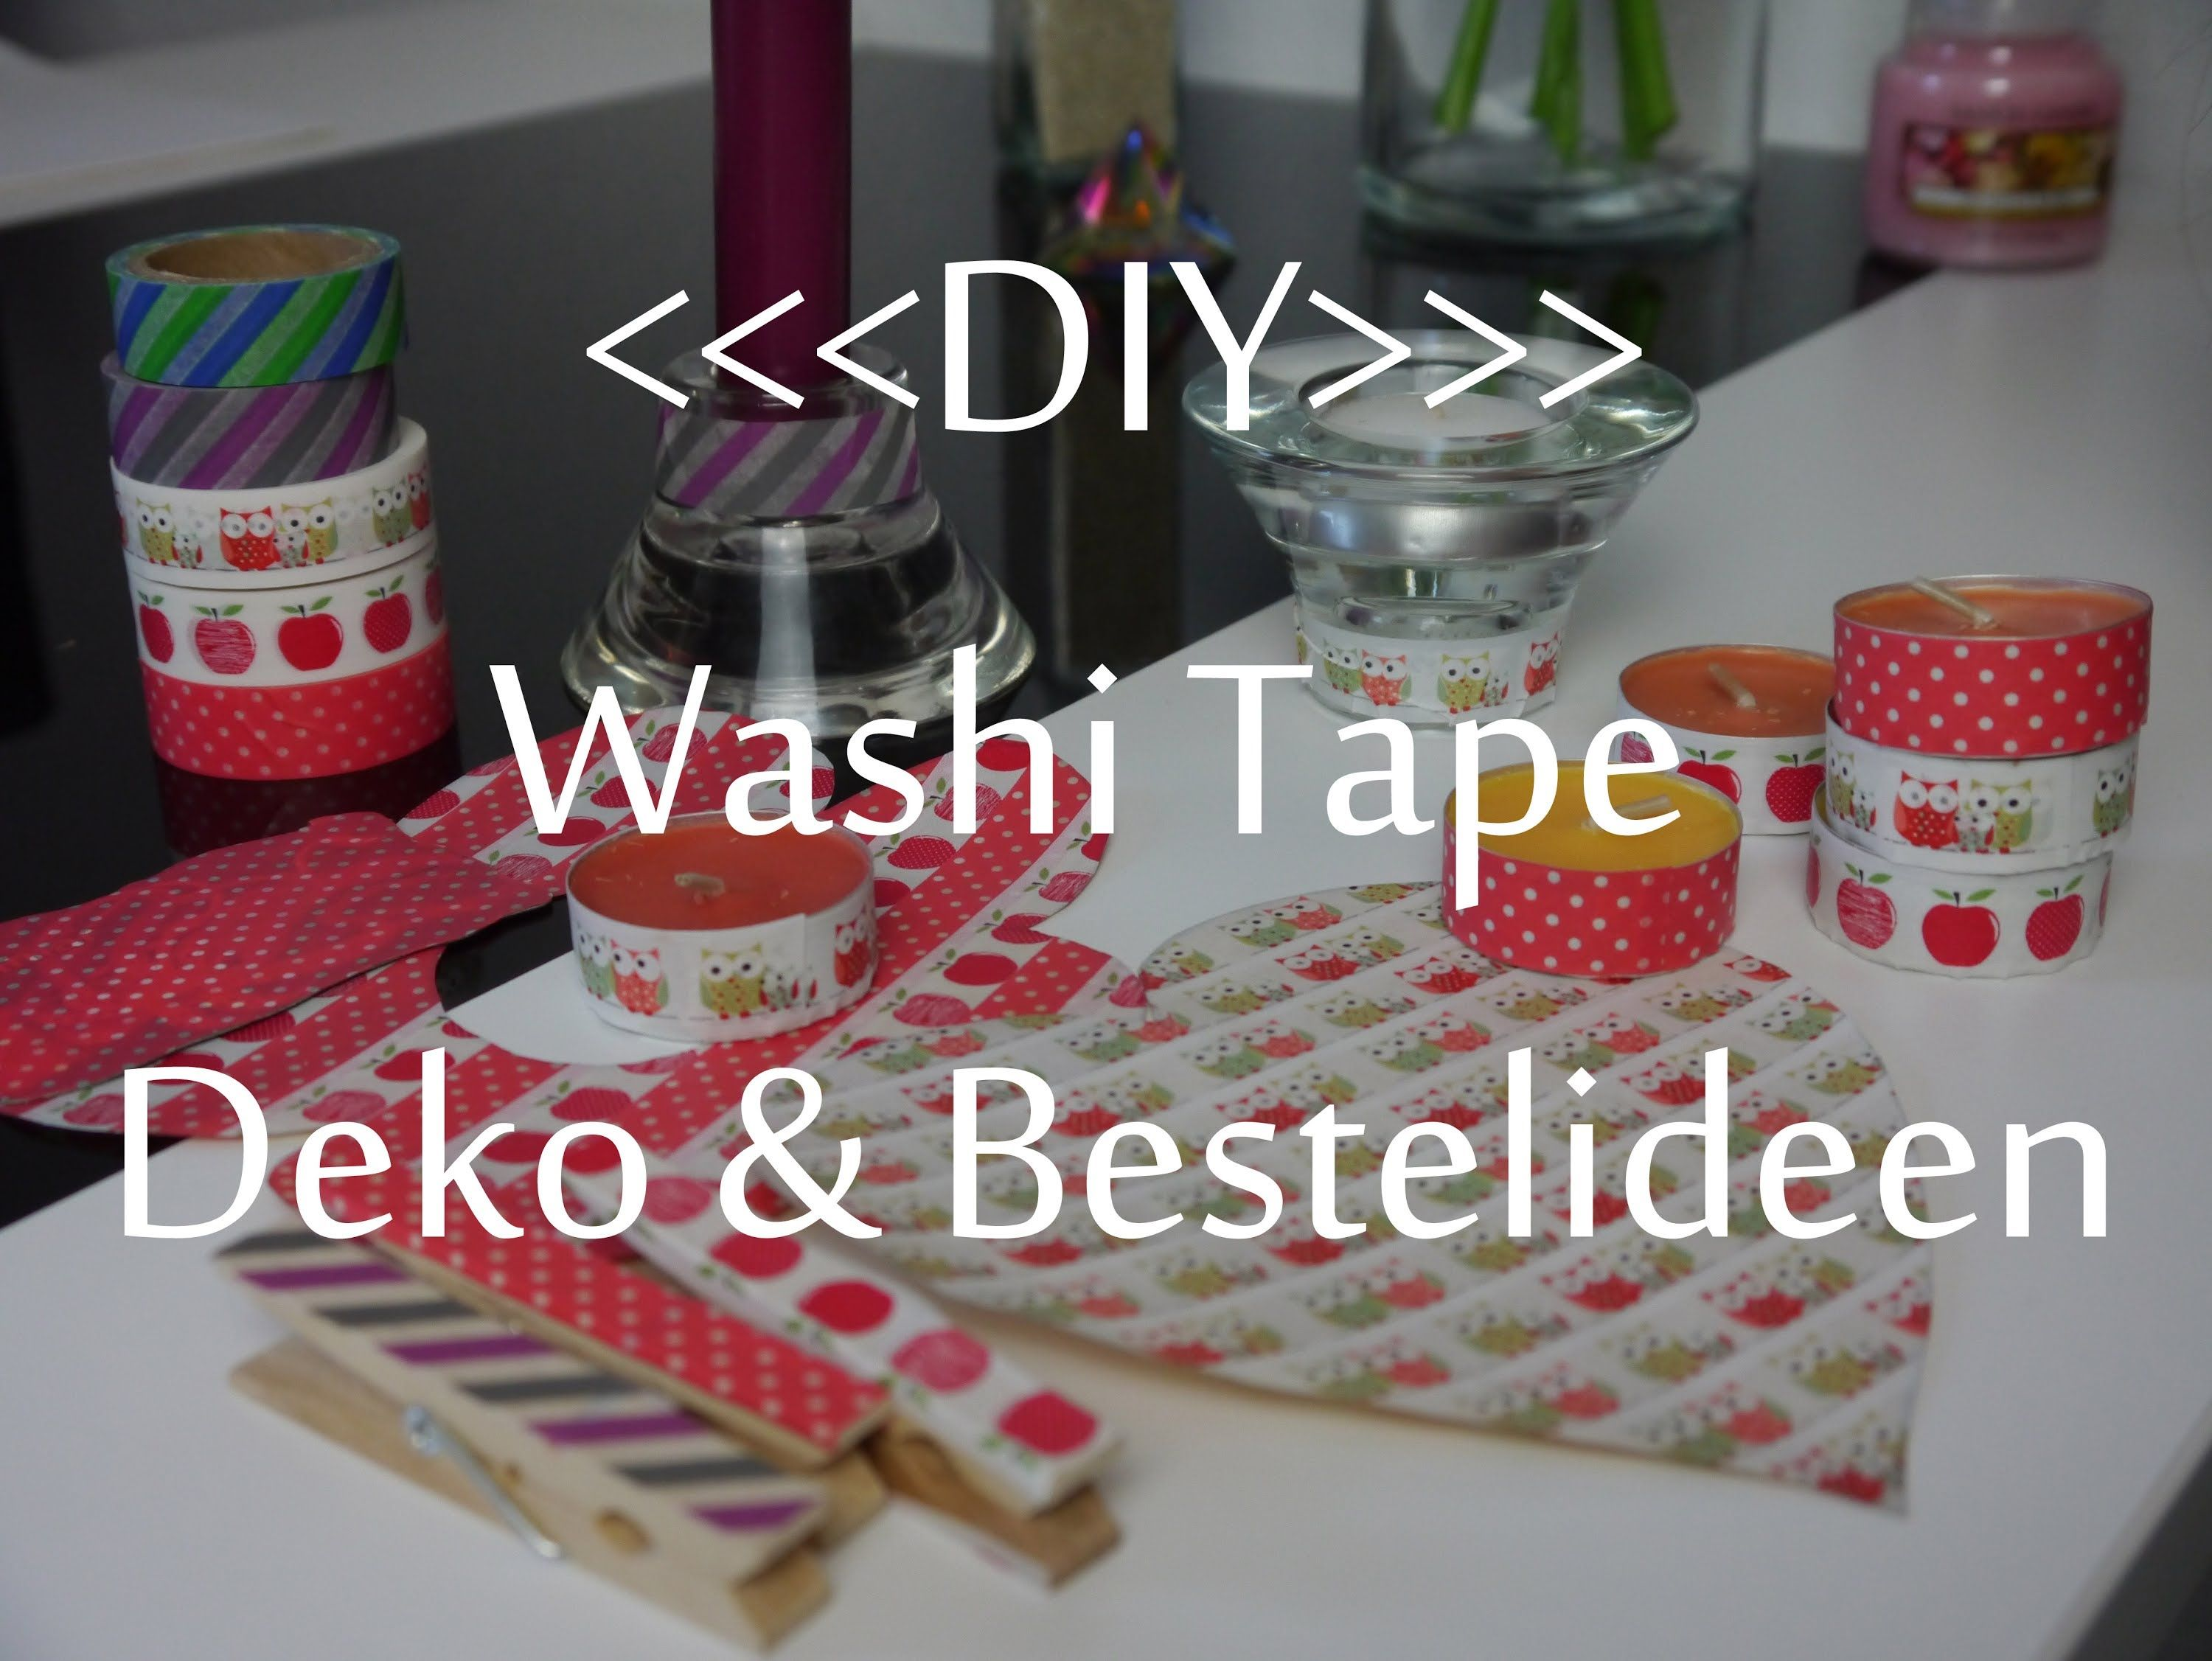 Washi tape bastelideen my detraiteurvannederland blog - Washi tape bastelideen ...